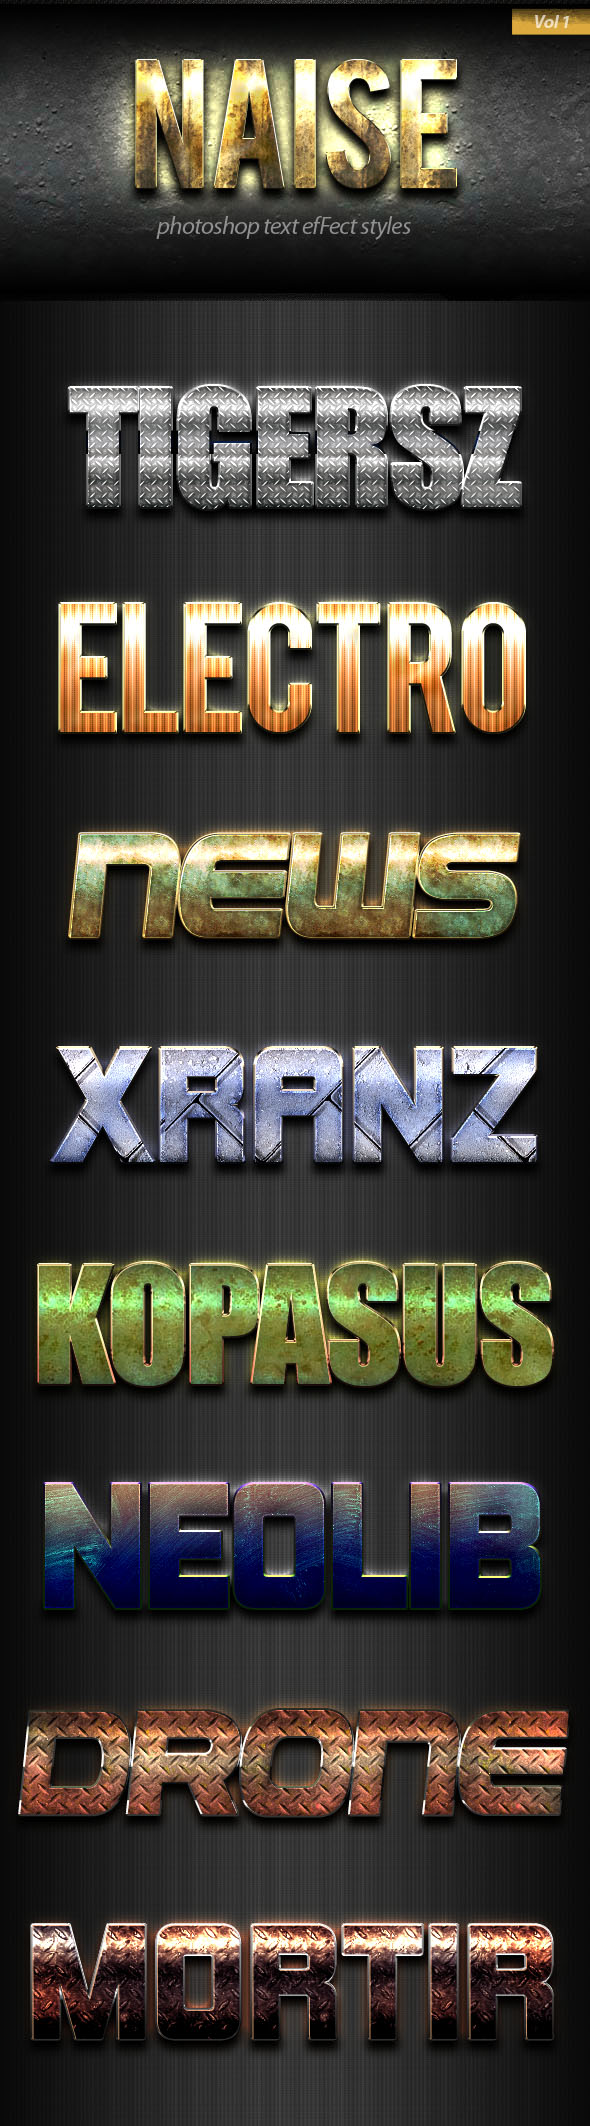 Naise Photoshop Text Effect Styles Vol 1 - Text Effects Styles